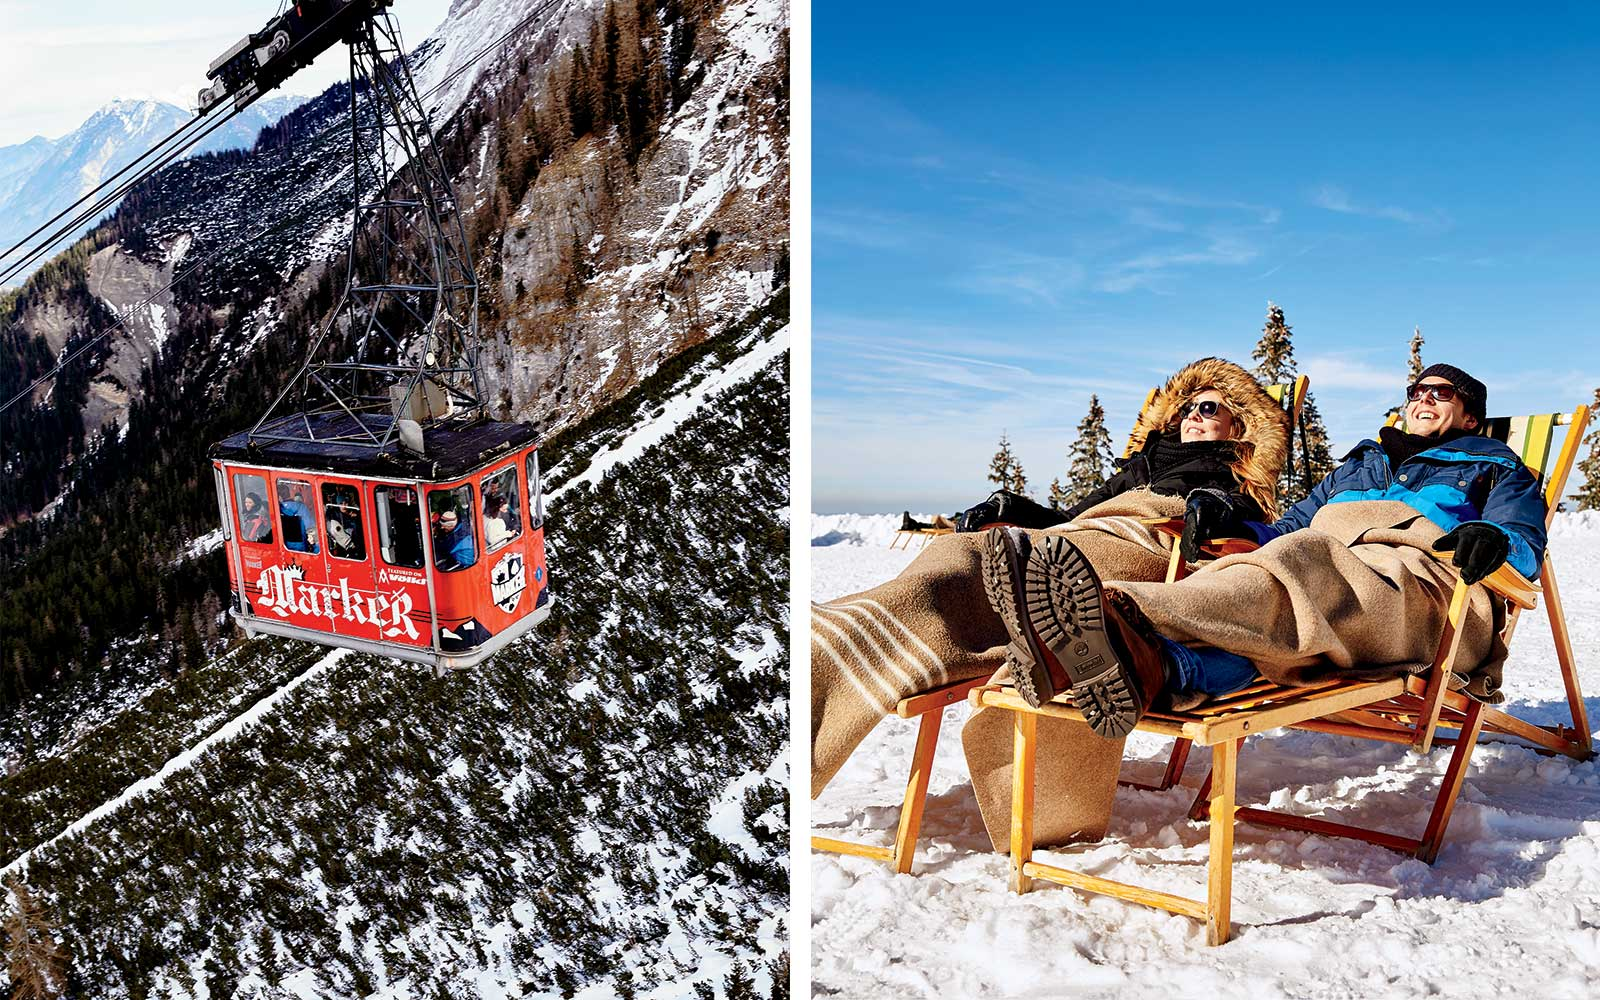 Gondola and sledders in Bavaria, Germany.